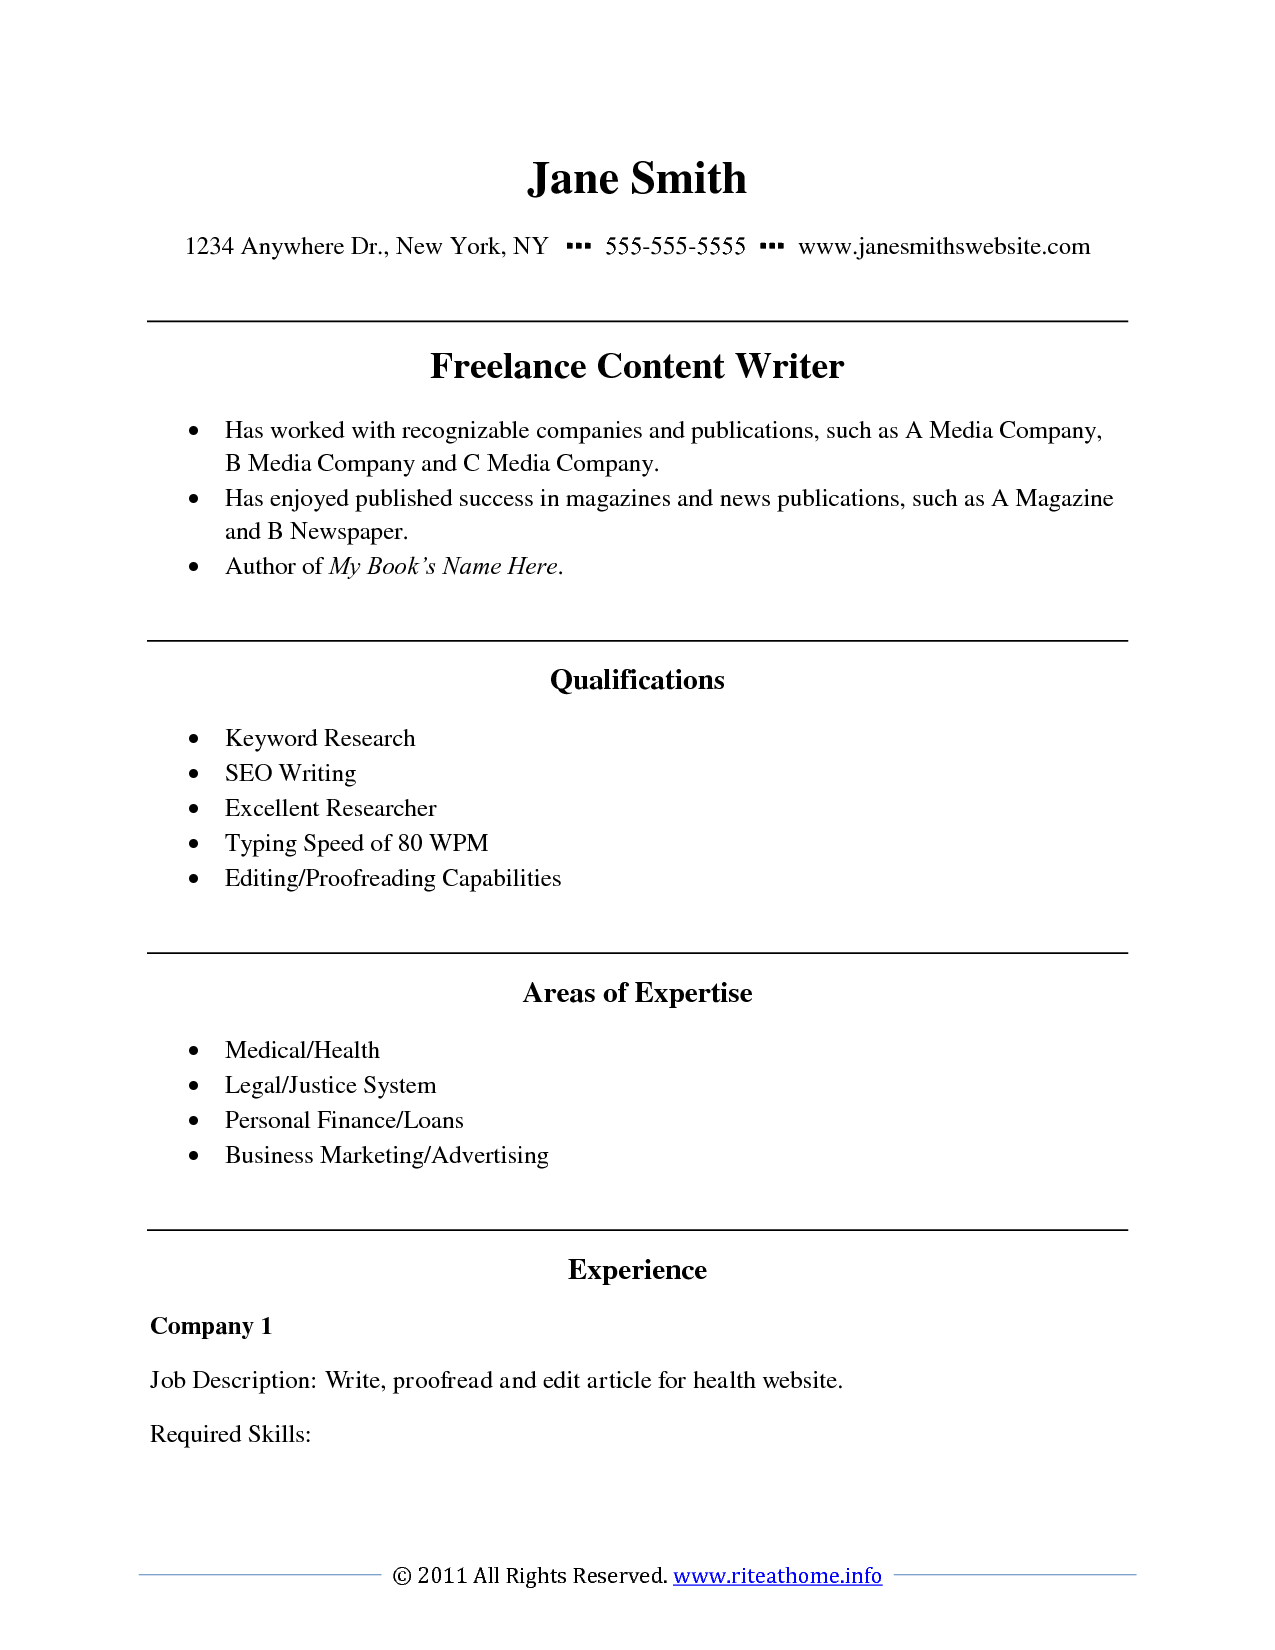 Resume Writing Examples Sample Resumes HDWriting A Resume Cover Letter  Examples  Resume Writting